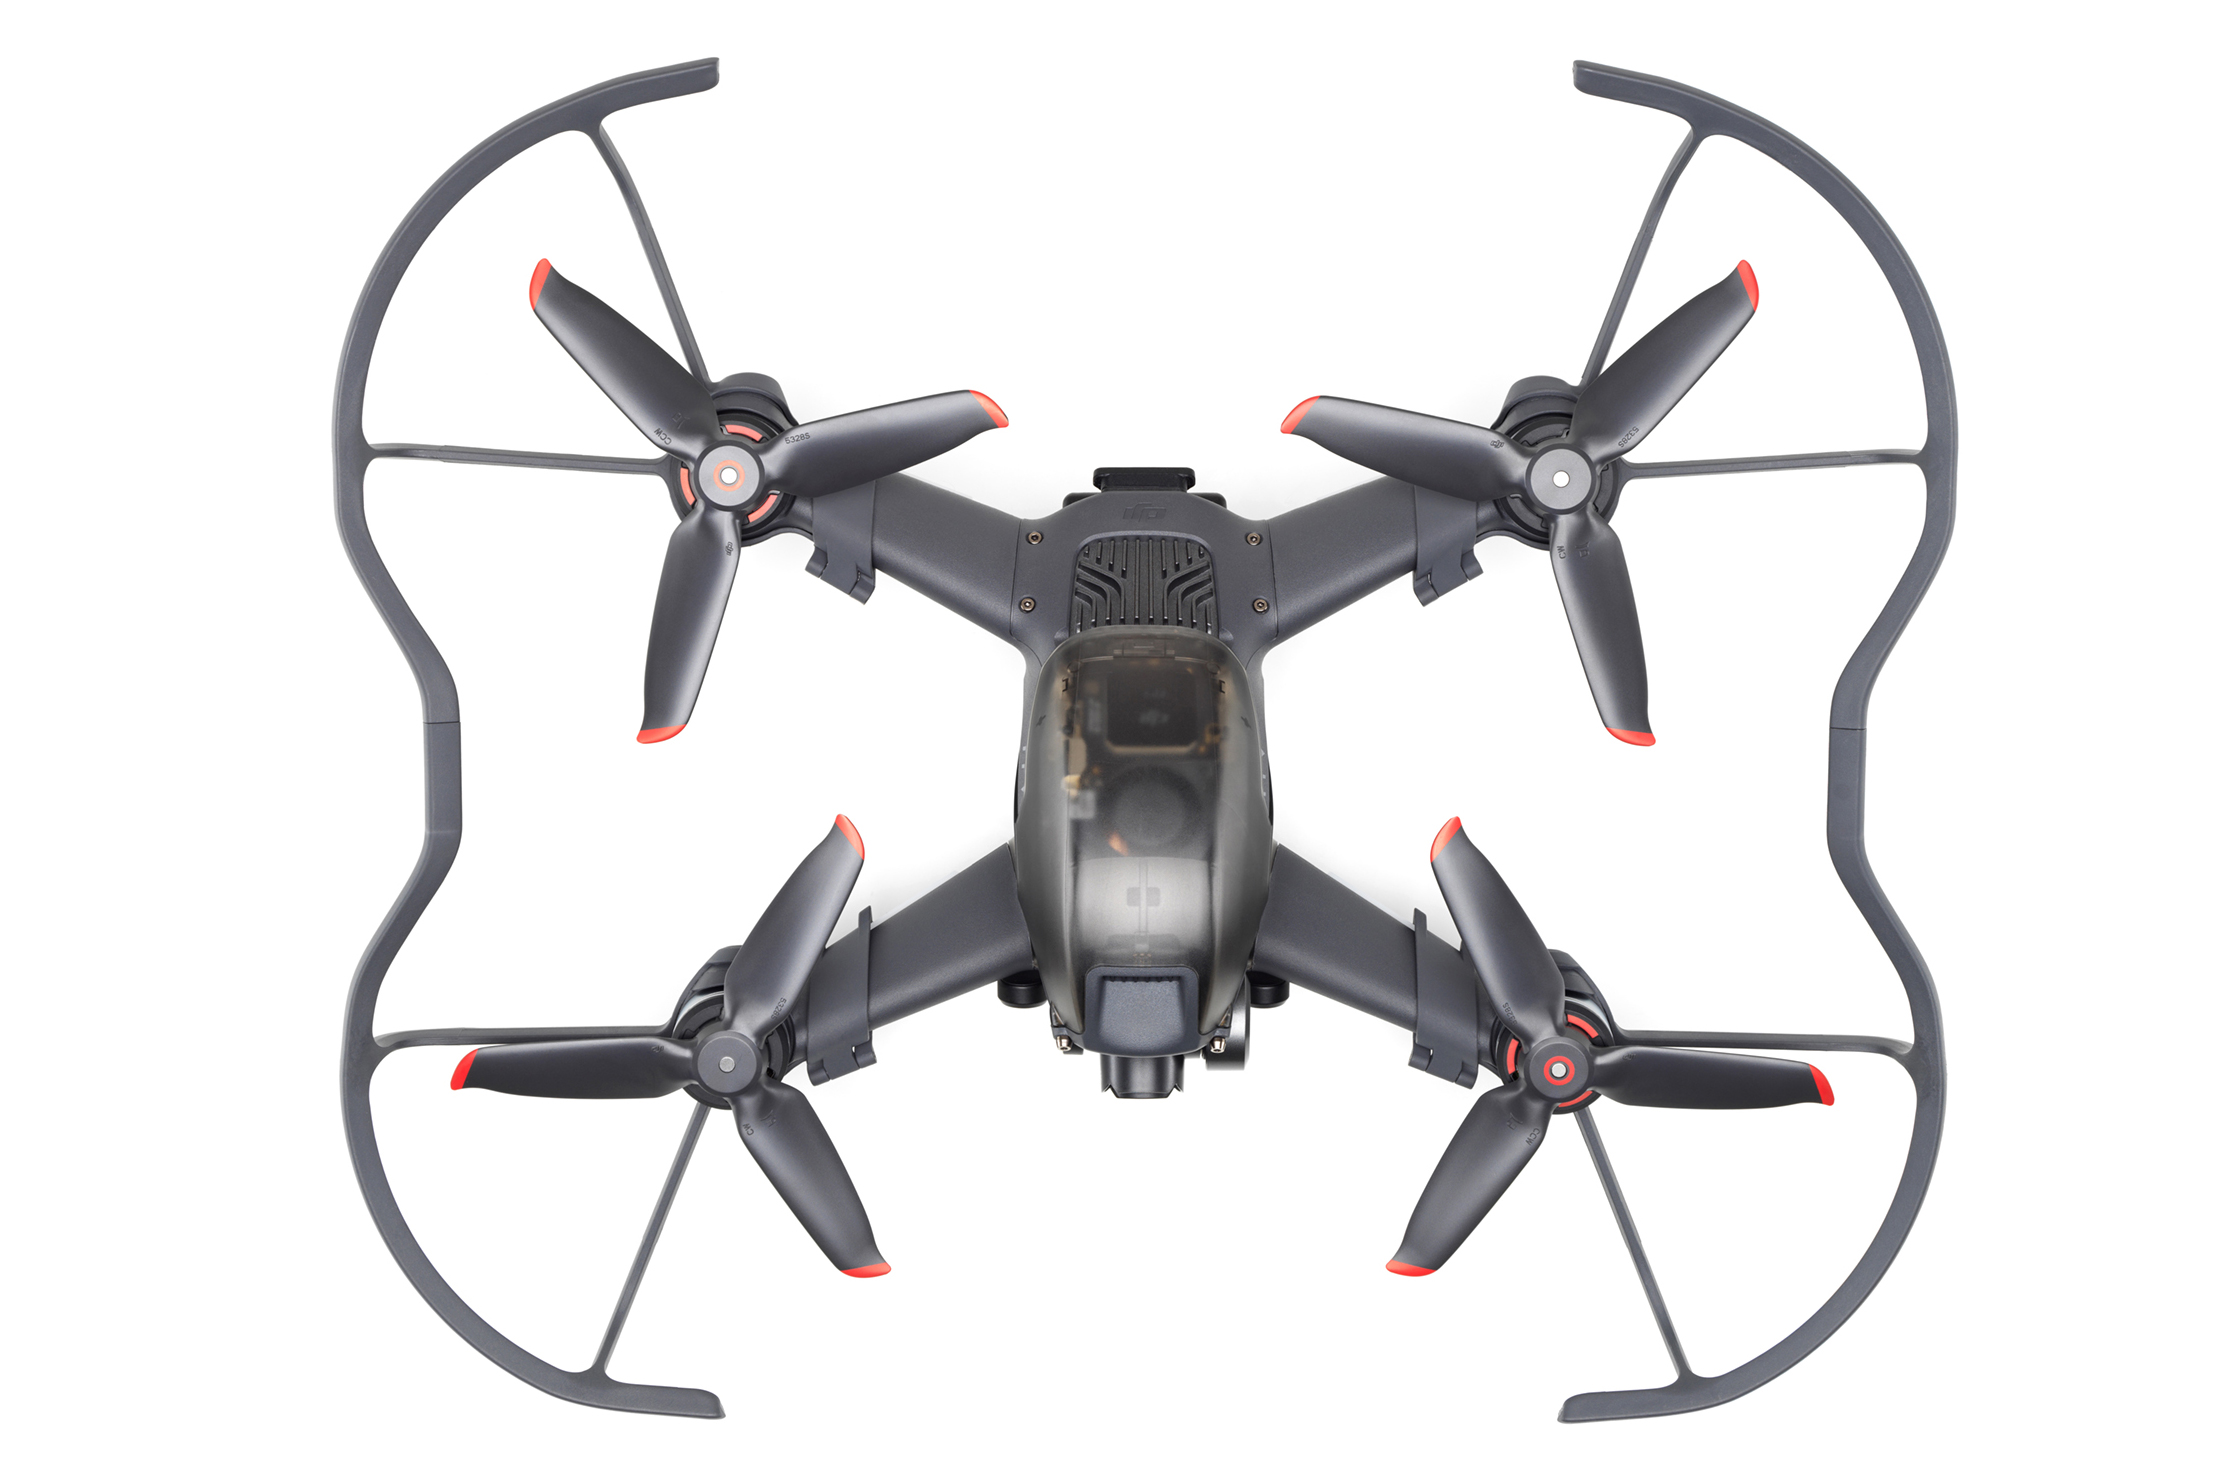 Drone + Propeller Guards 2